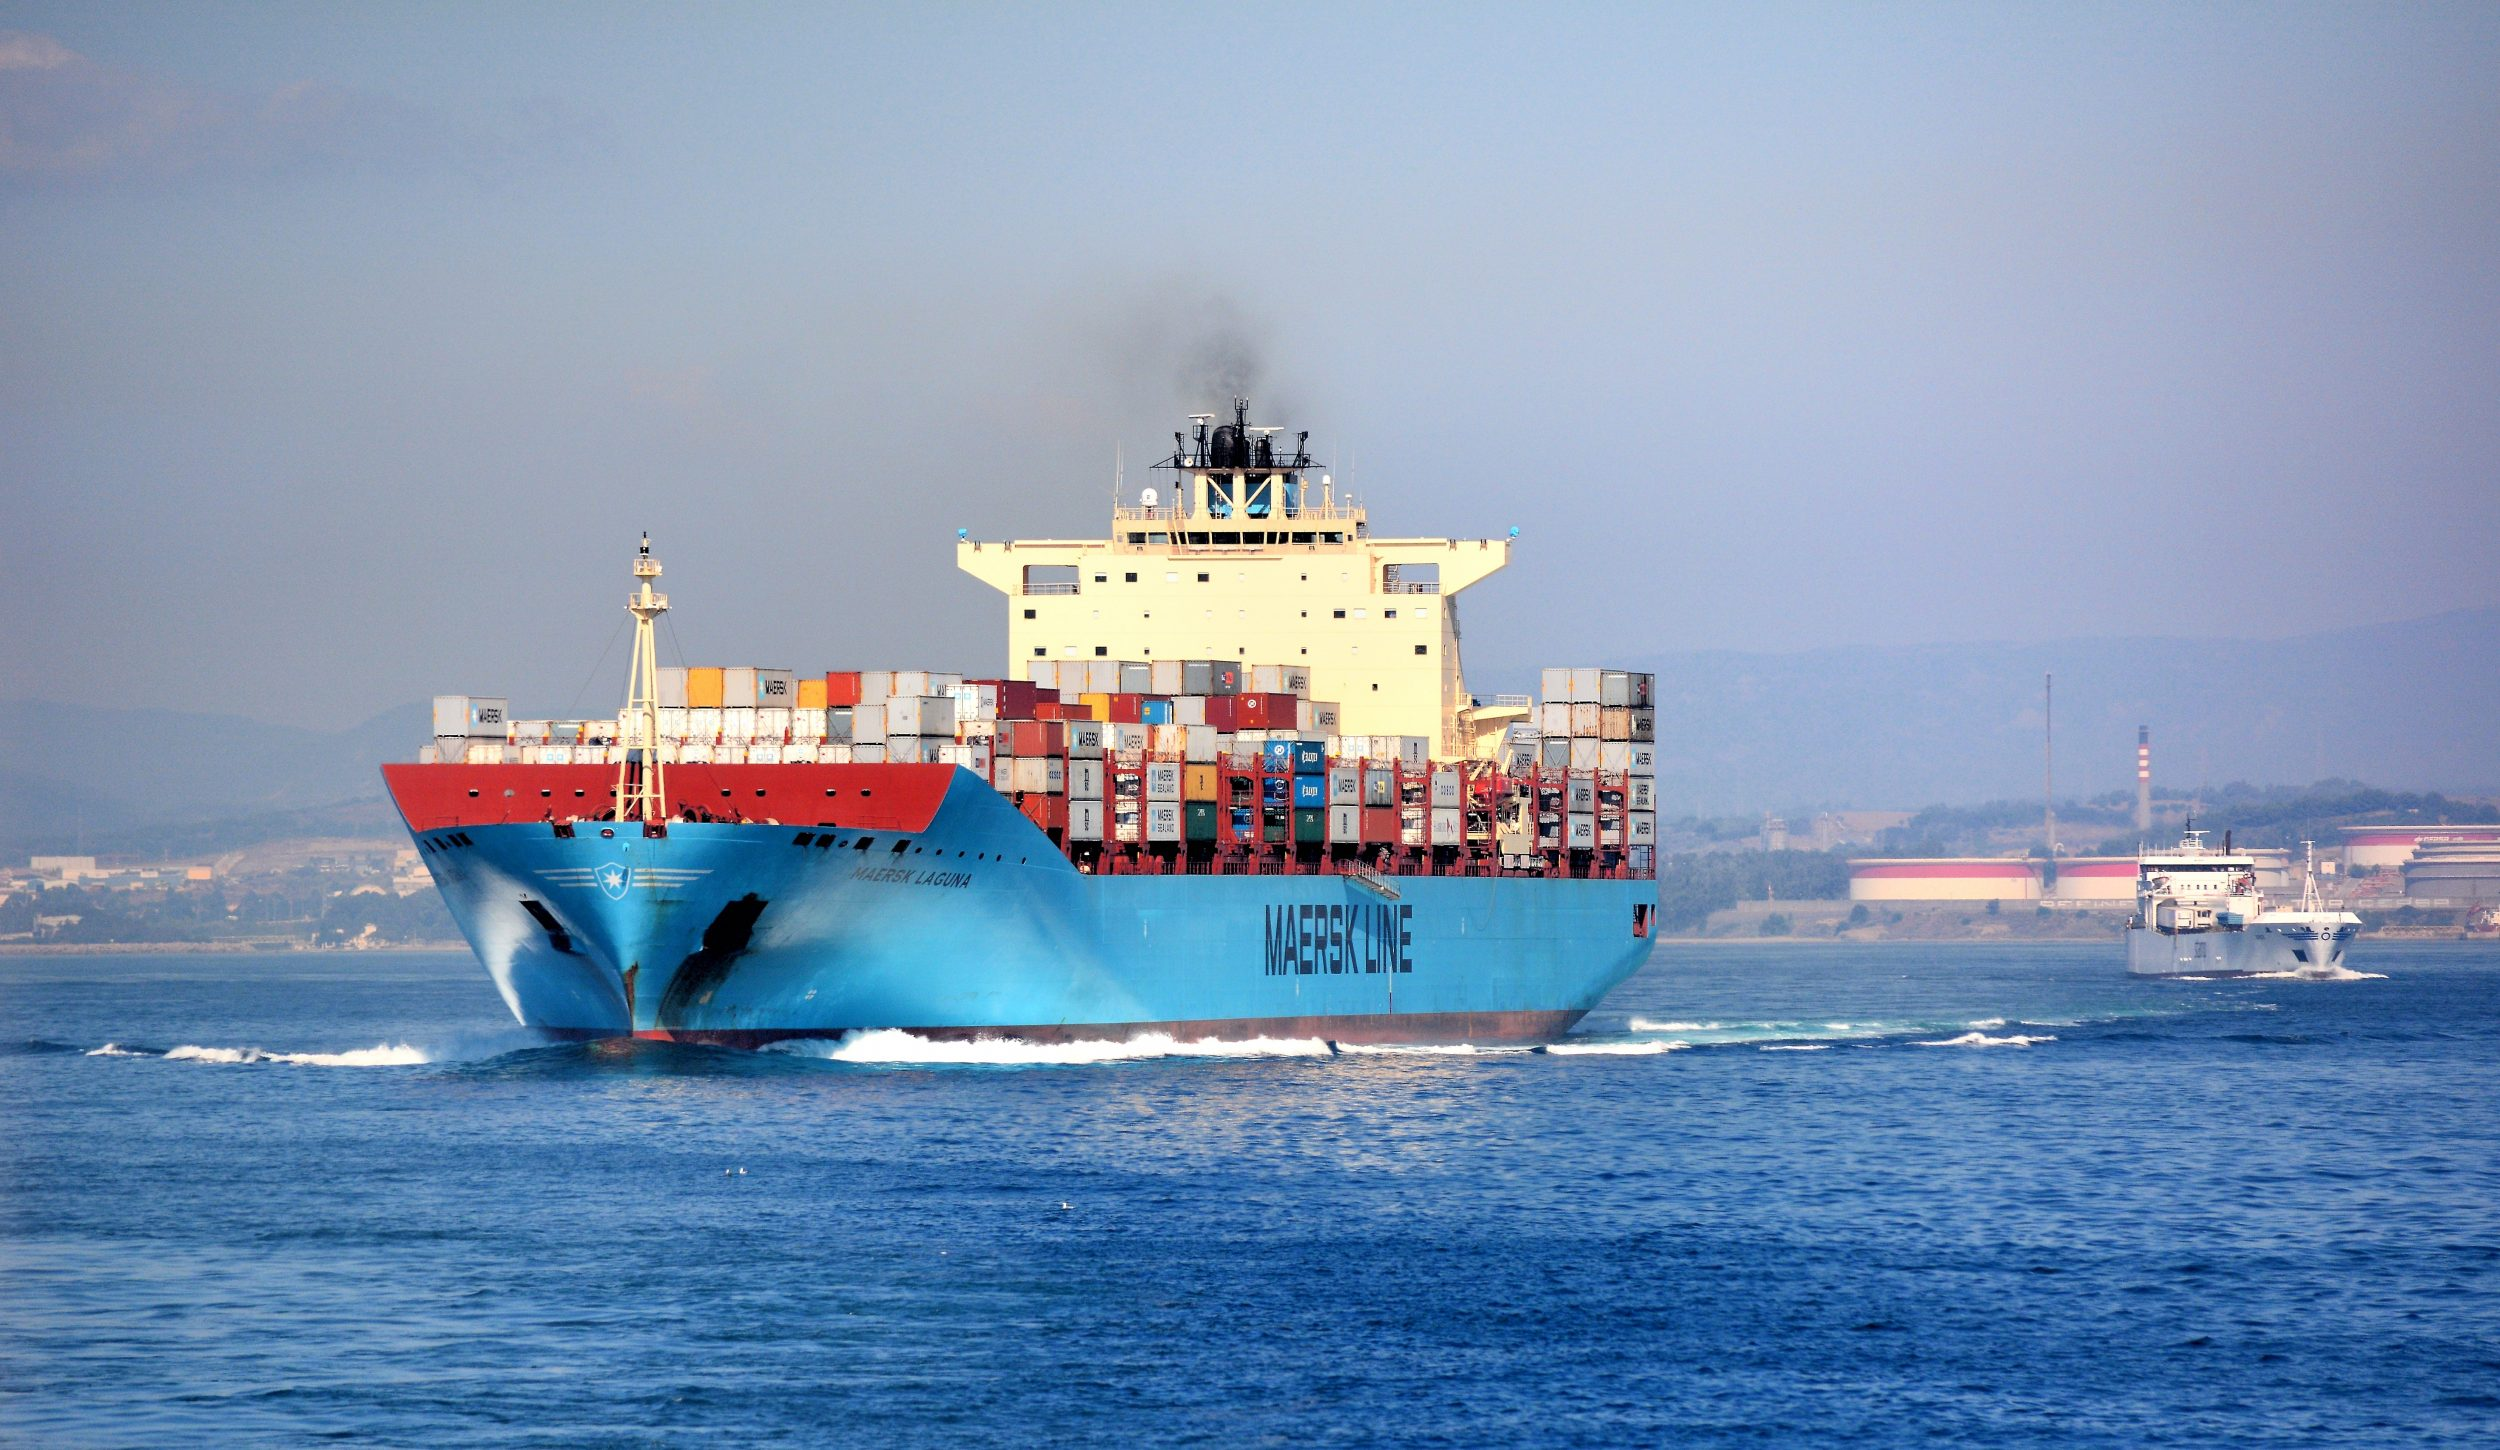 Maritime Accidents and Injuries Overview